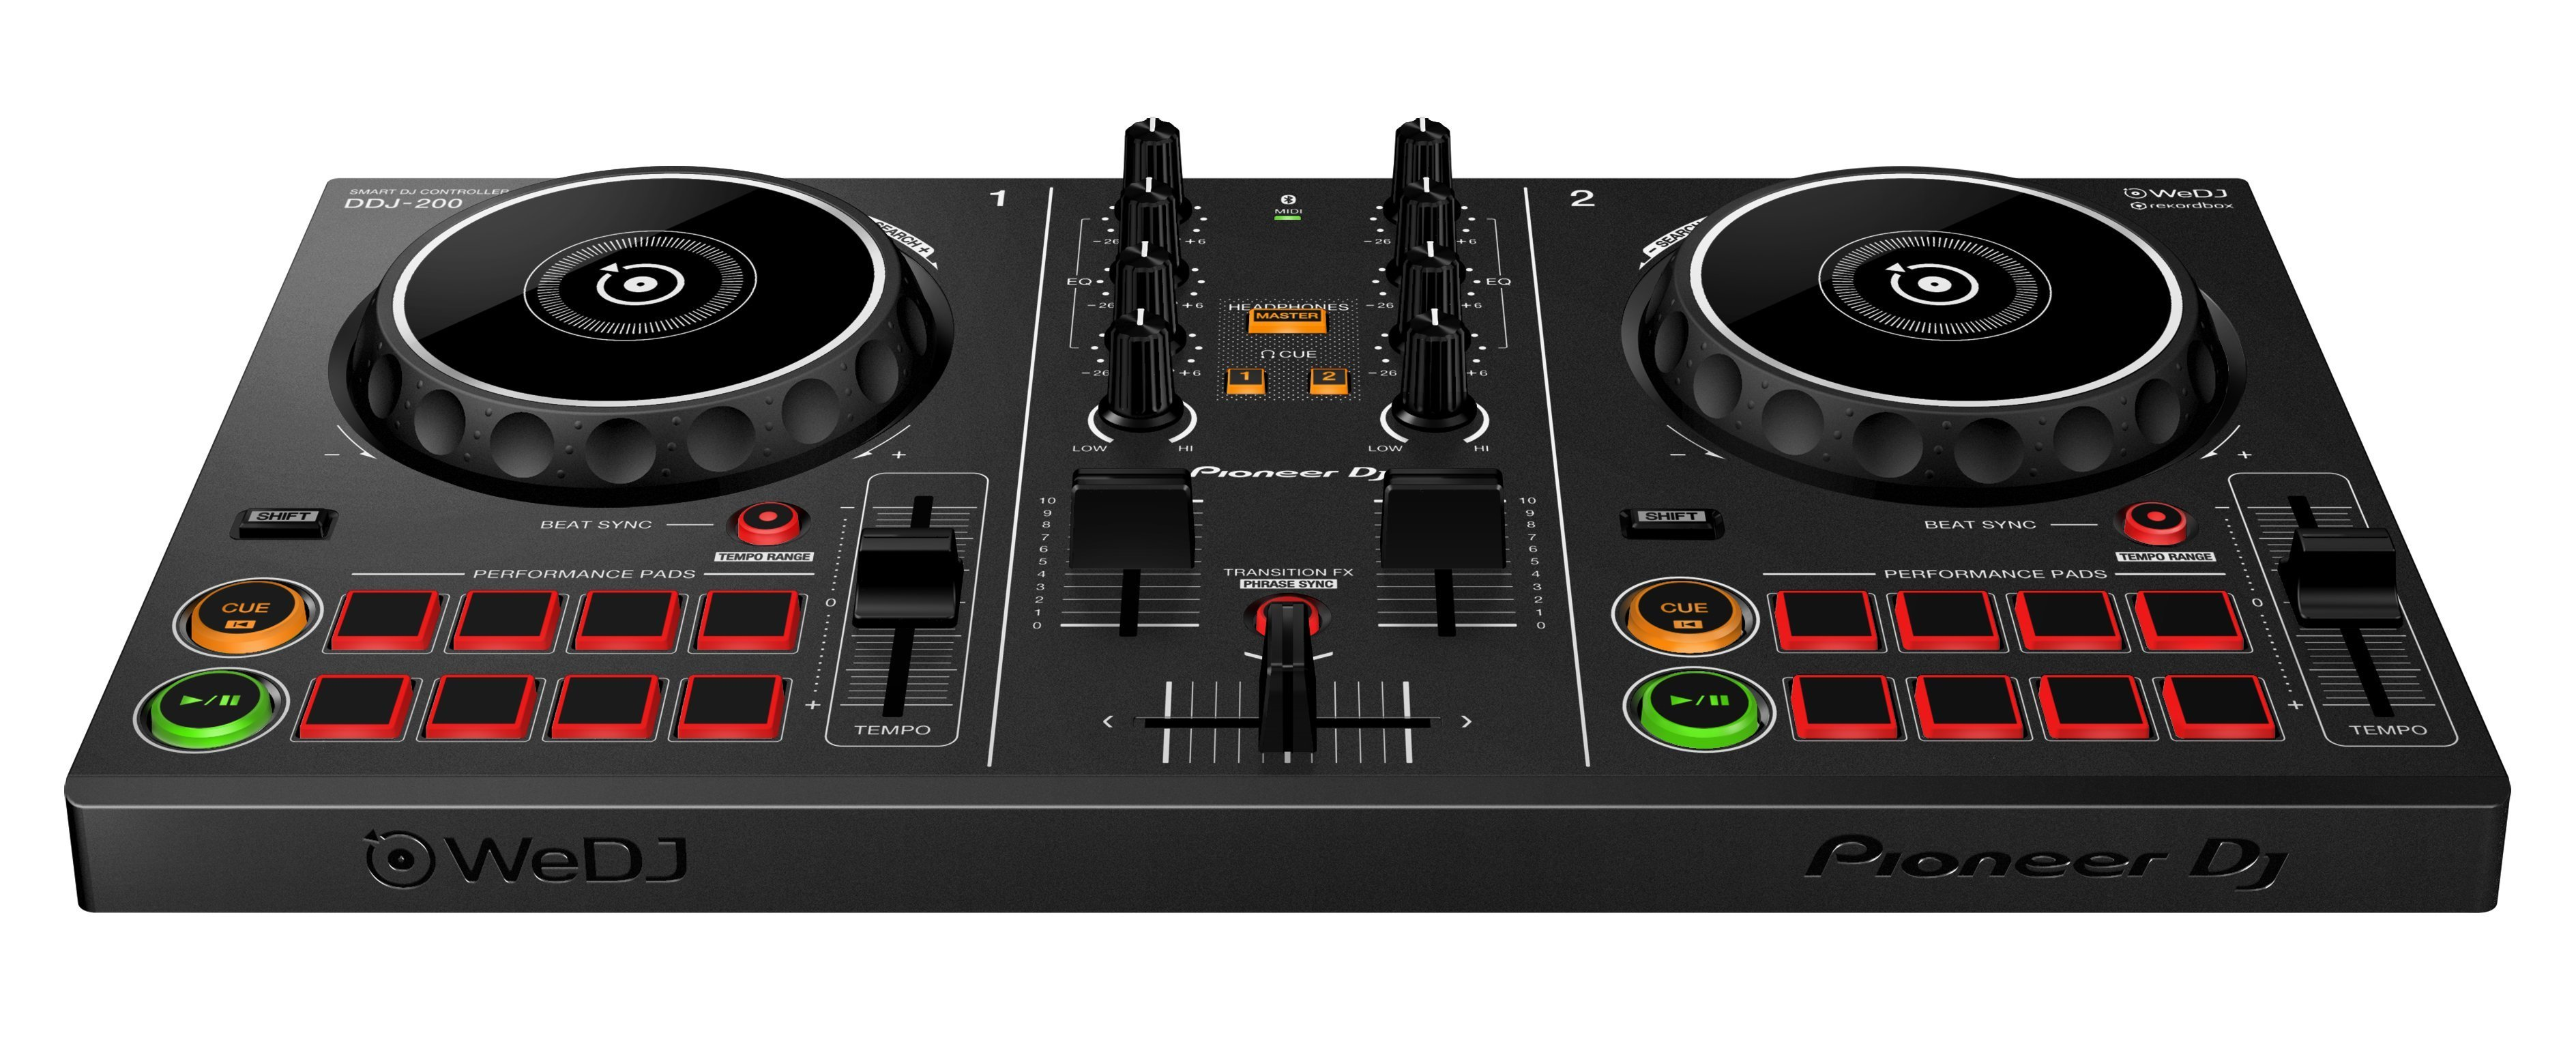 Pioneer DD-200 wireless bluetooth controller weds Spotify djay edjing (25)